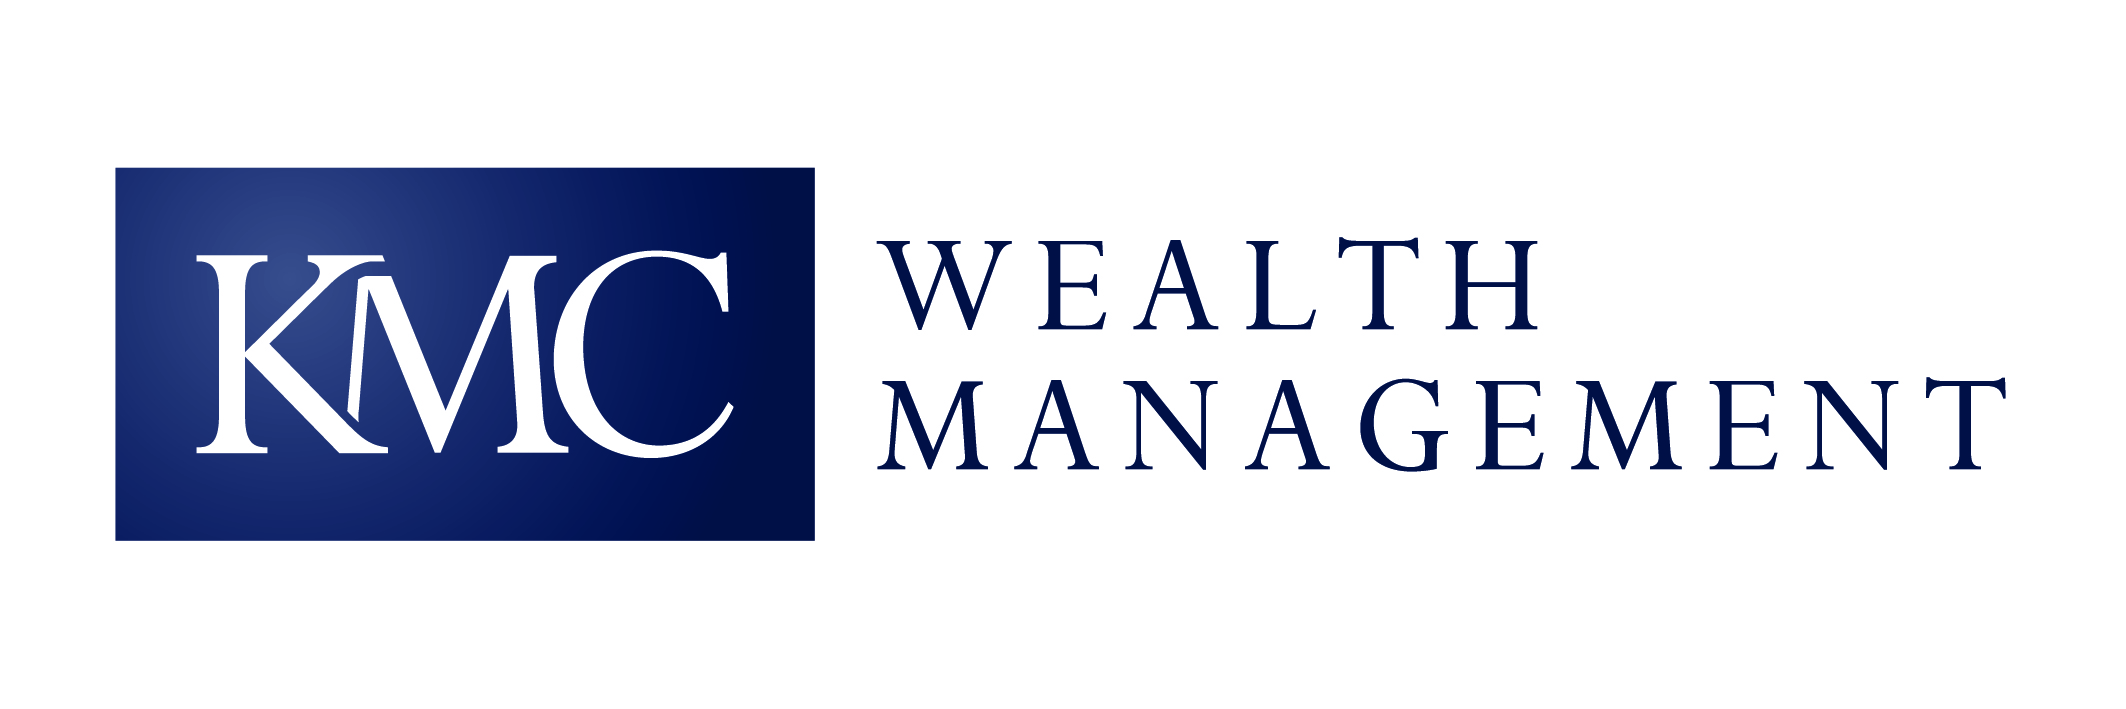 KMC Wealth Management, Lisburn